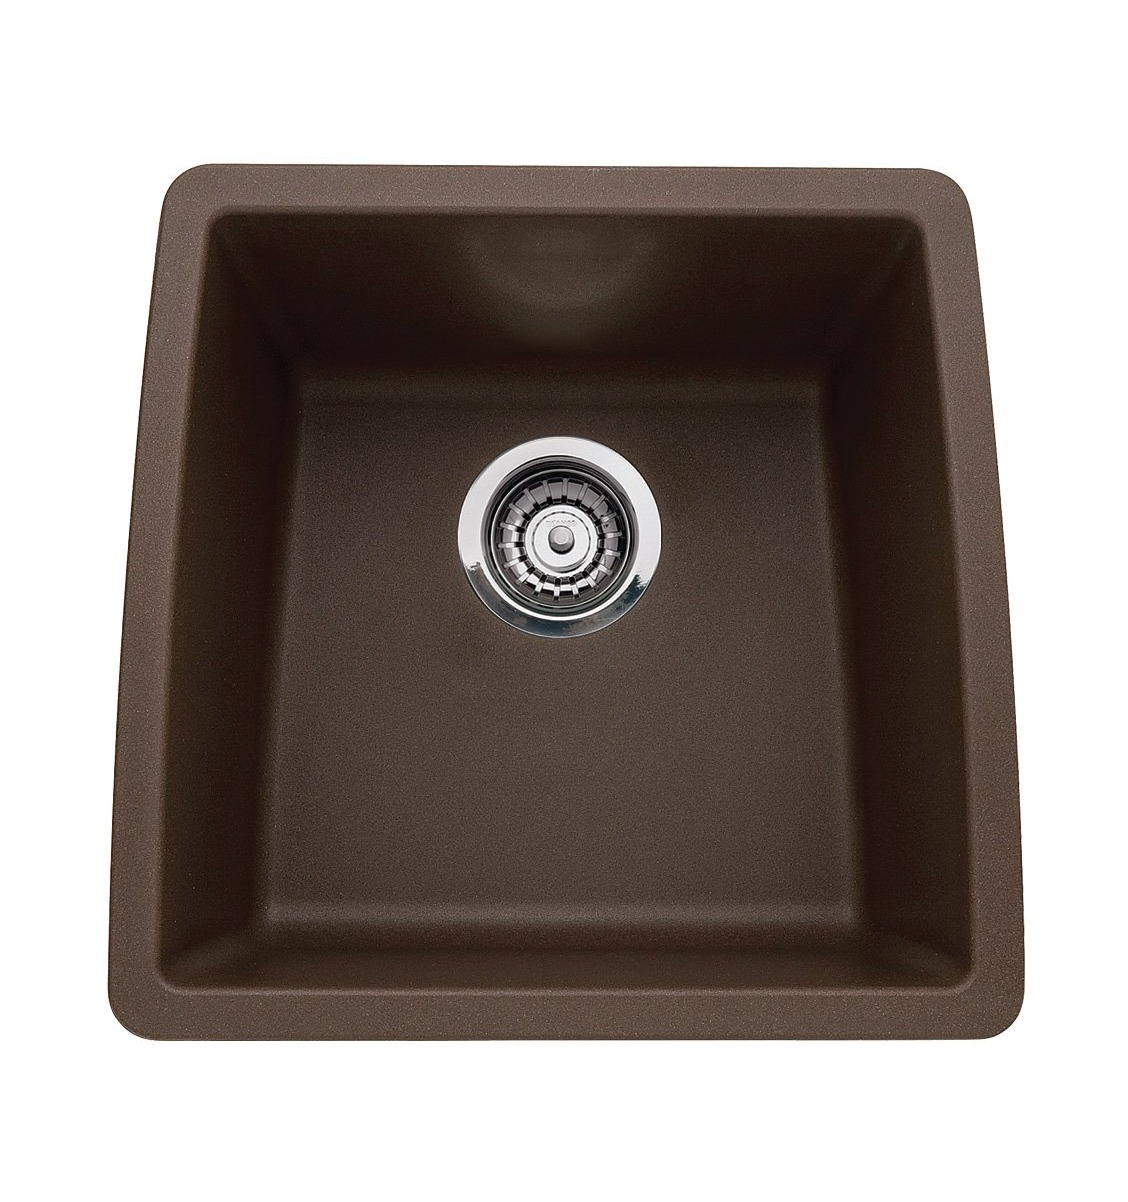 Blanco 440078 Performa Silgranit II Single Bowl Sink, Caf? Brown ...